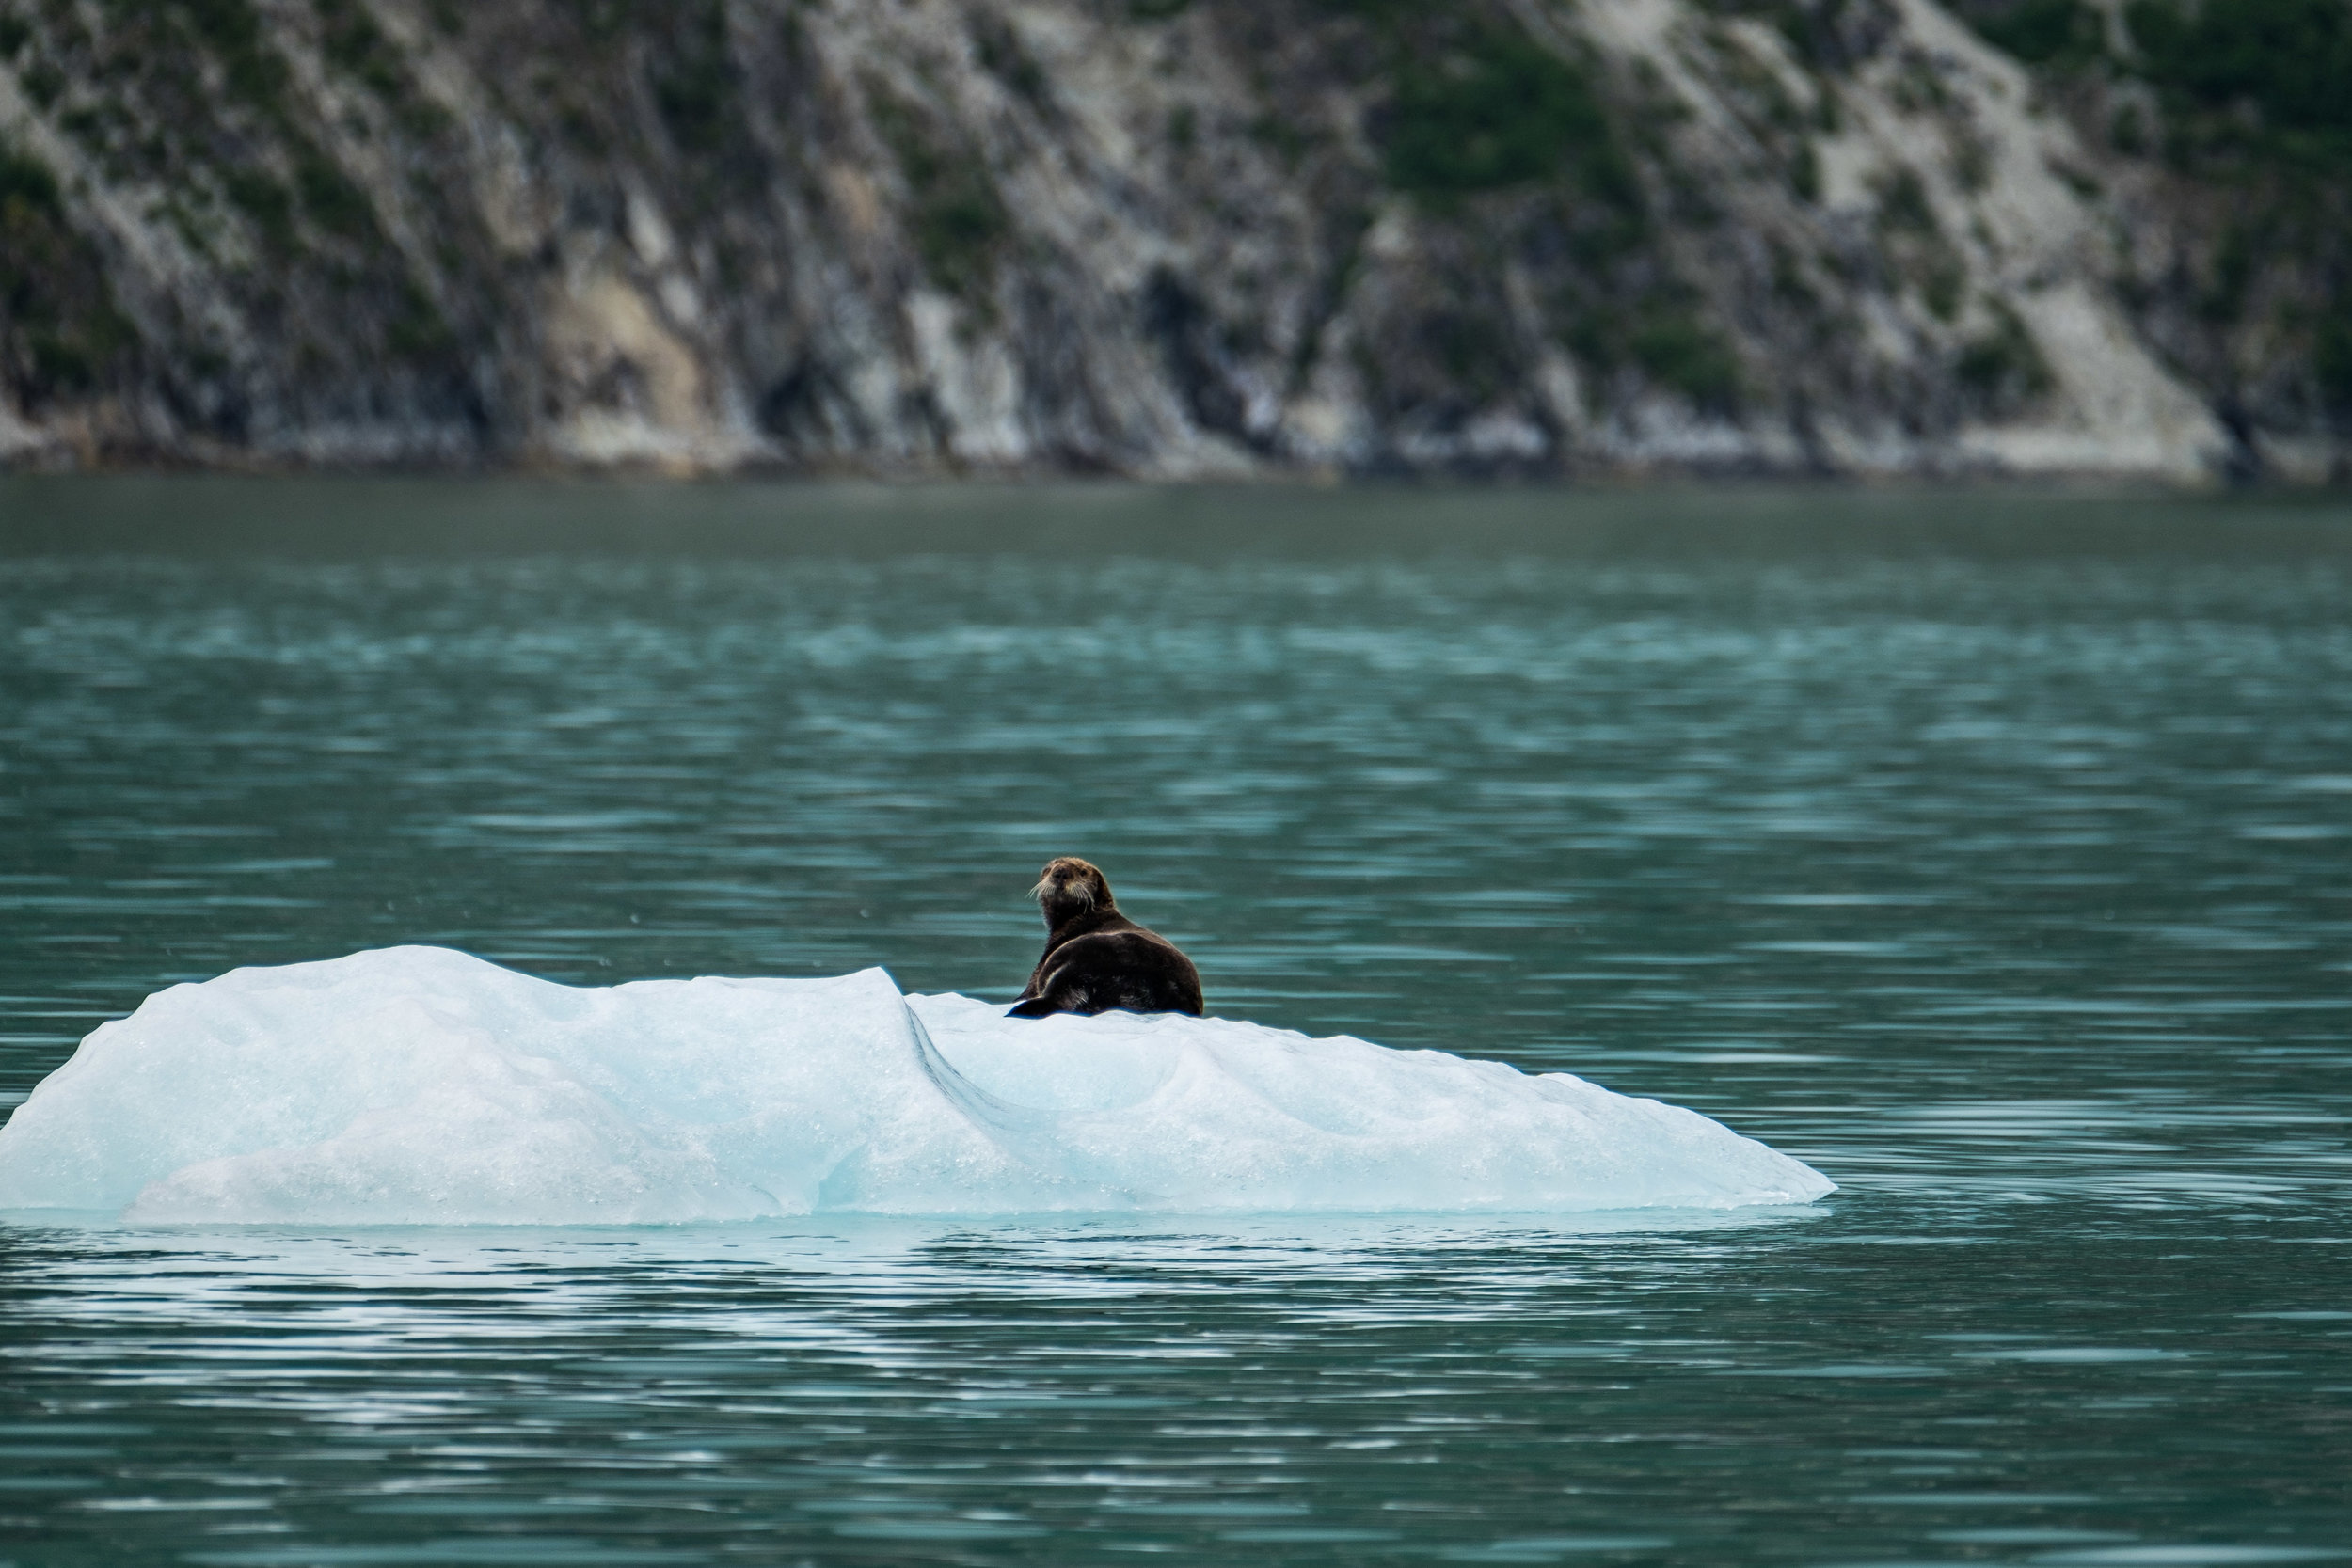 Harbor seals in Glacier Bay rarely hand out on the ice so this is a treat.